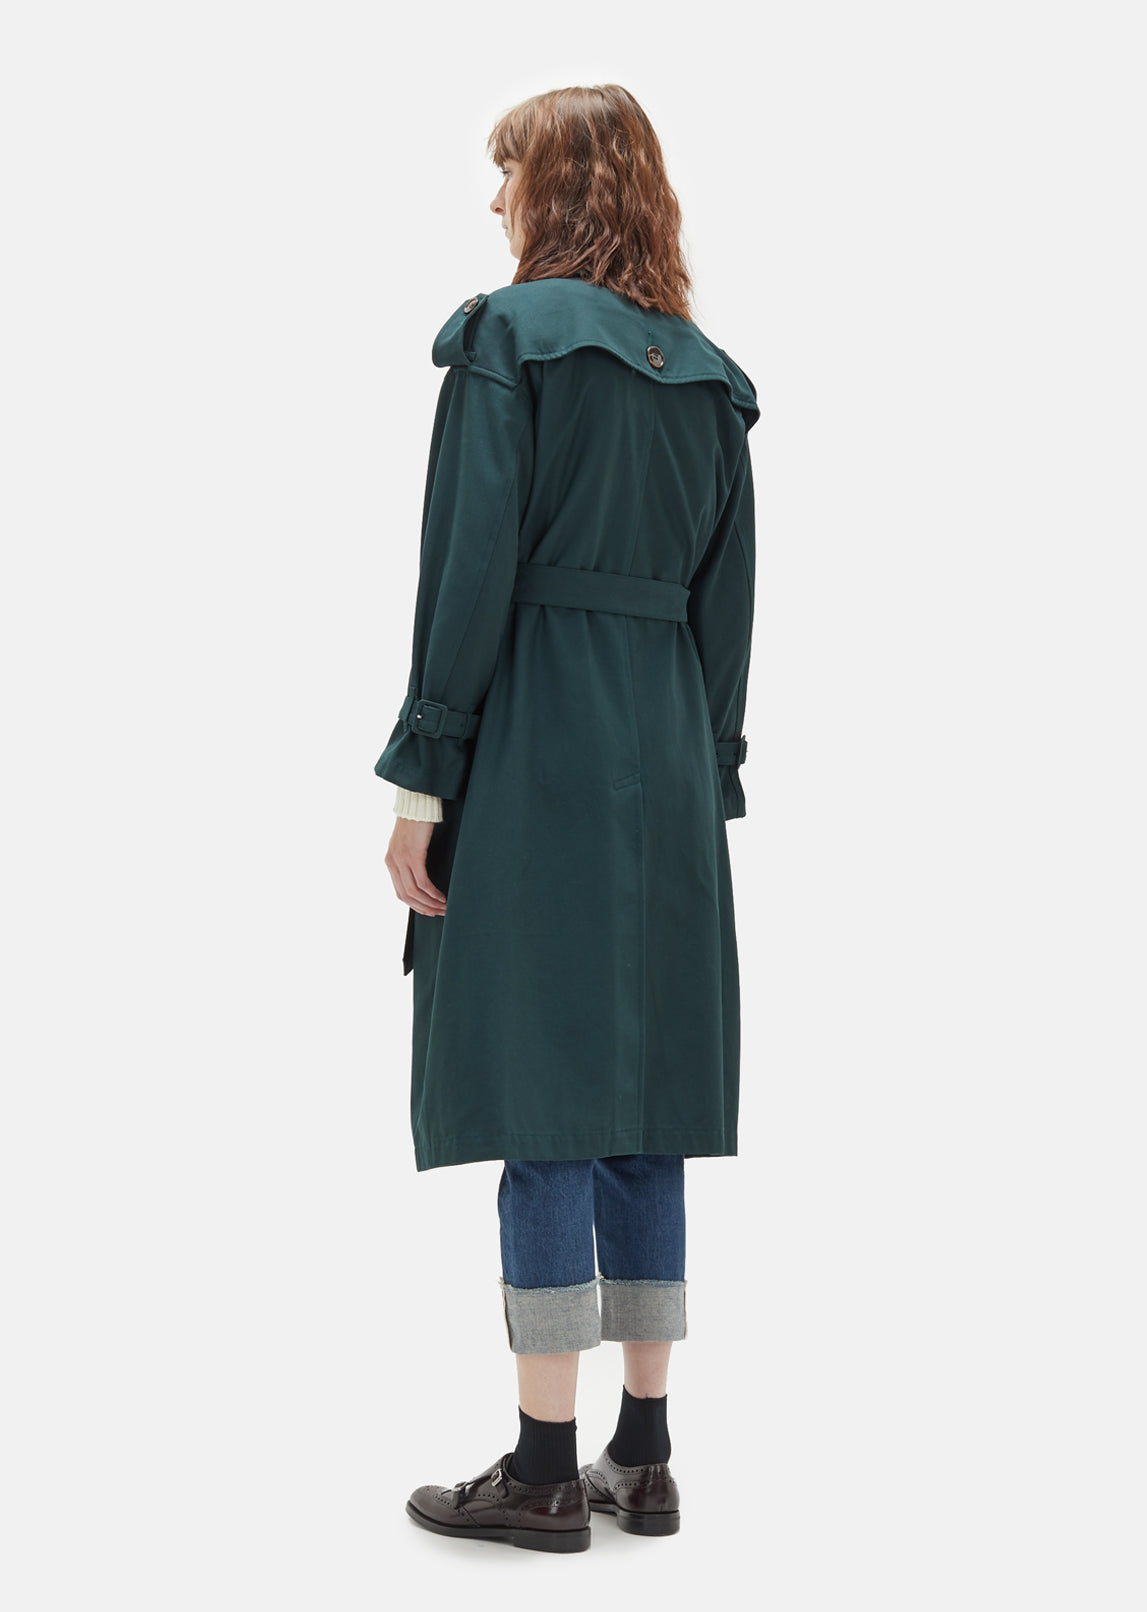 Voile Karsey Trench Coat